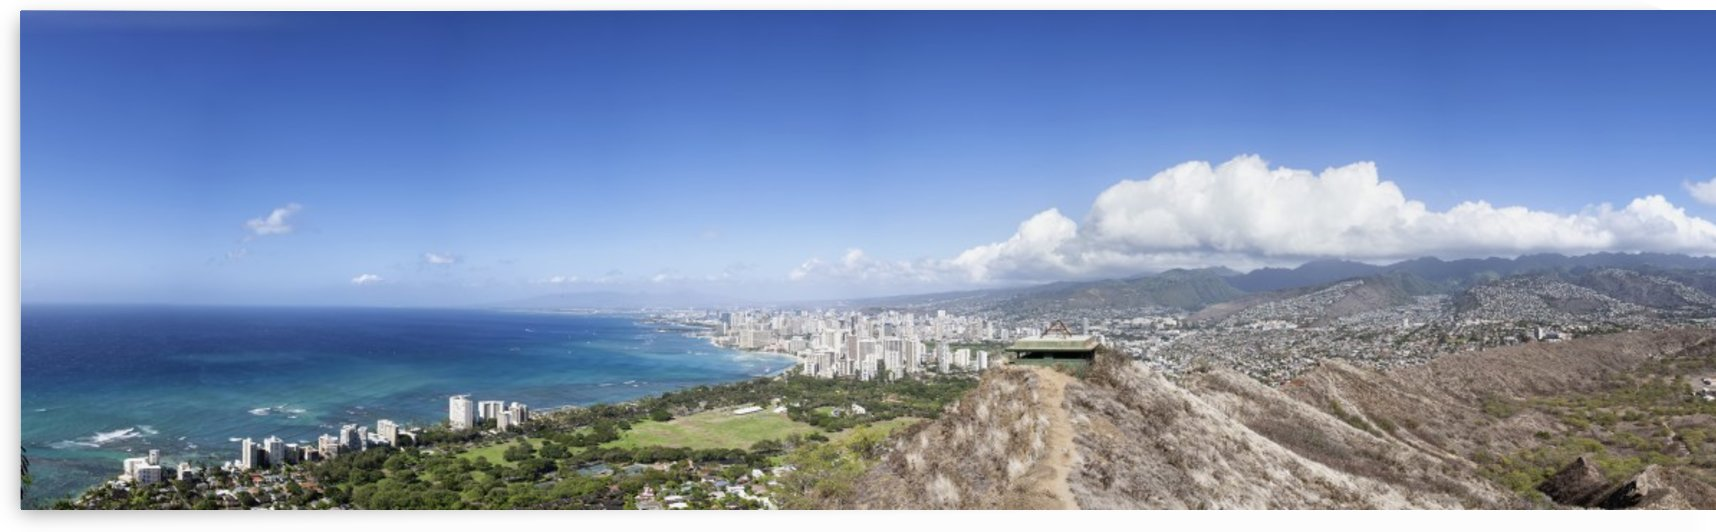 Looking out over Waikiki from Diamond Head; Honolulu, Oahu, Hawaii, United States of America by PacificStock